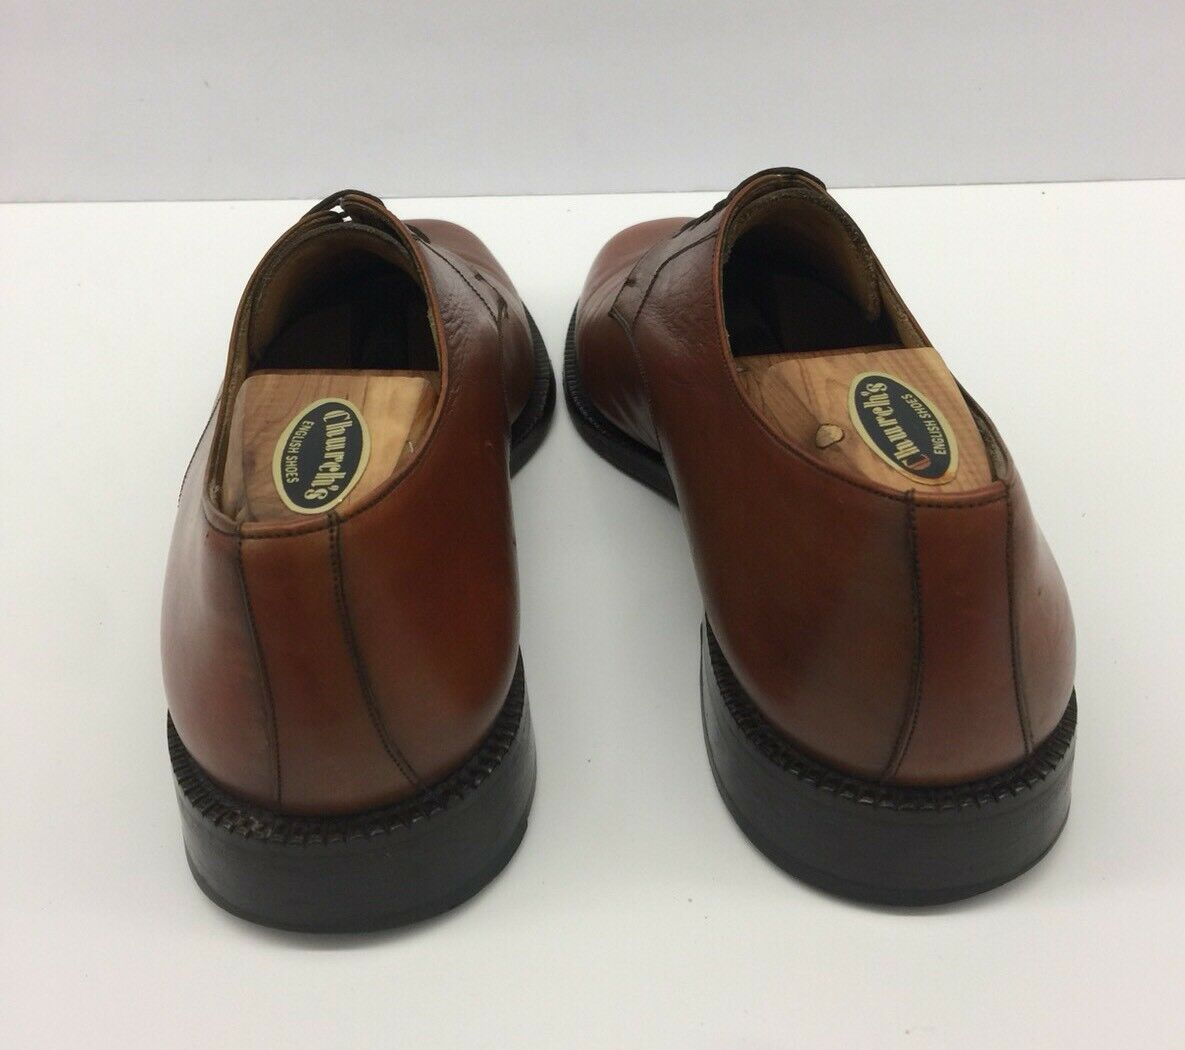 CHURCH'S braun Tan Tan Tan Plain Toe Loafers Dress schuhe Mens Größe 9.5 W wide 695409